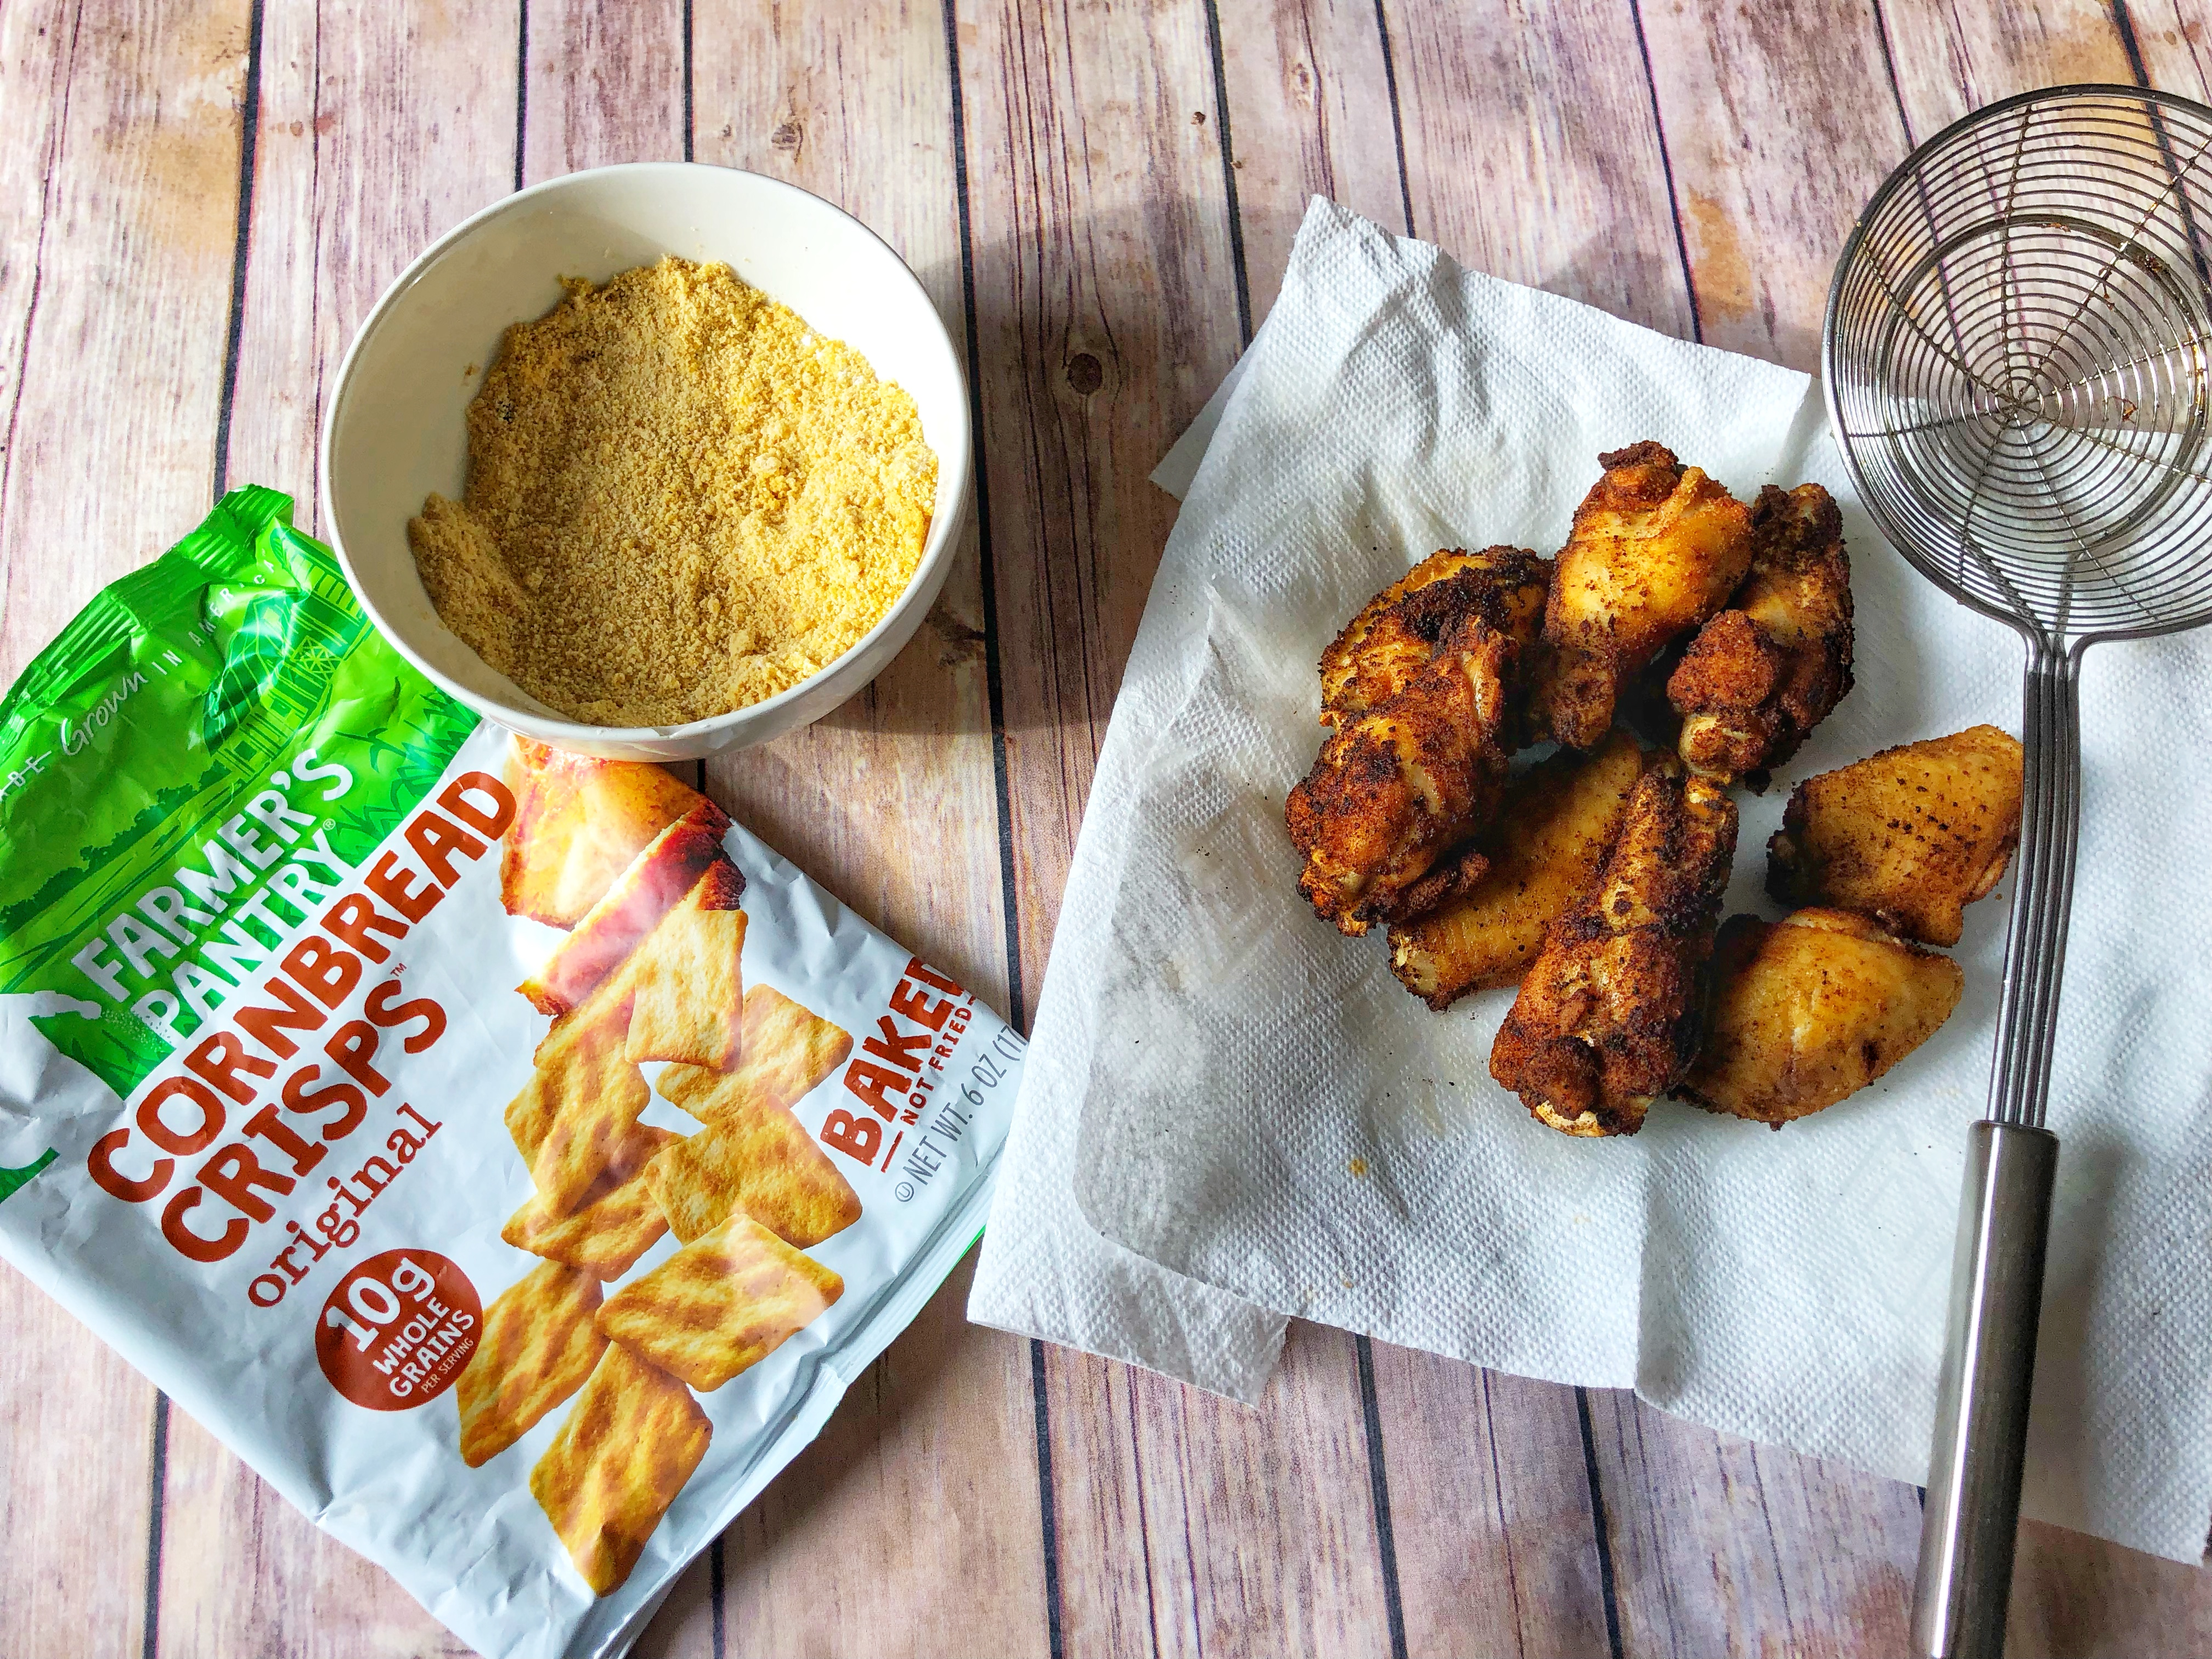 Farmer's Pantry Cornbread Crisps and Chicken Wings